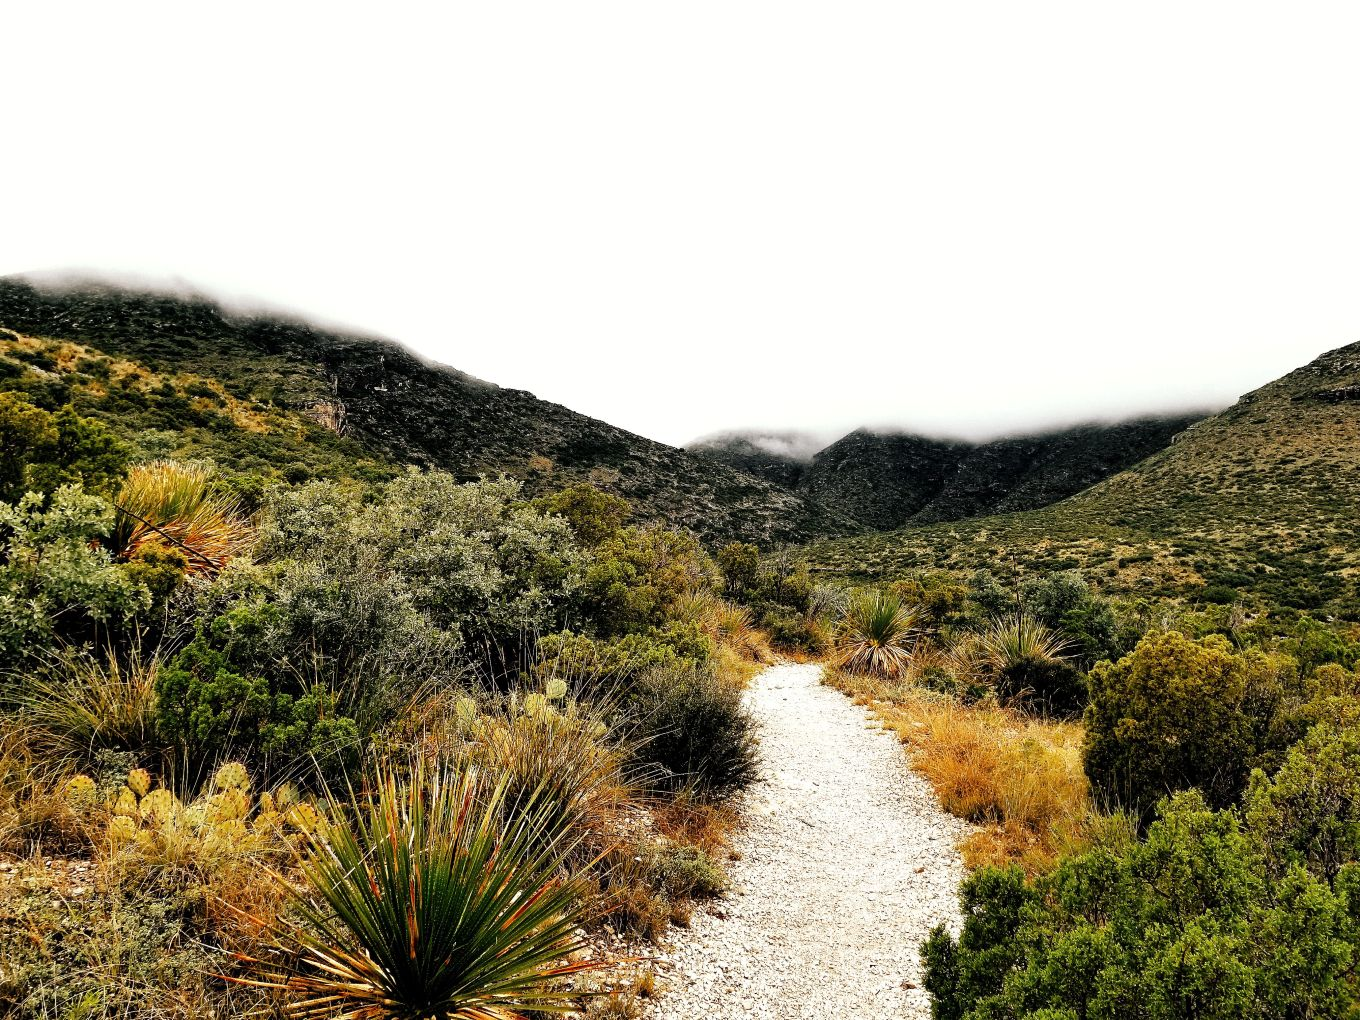 Pinery Trail, Guadalupe Mountains National Park